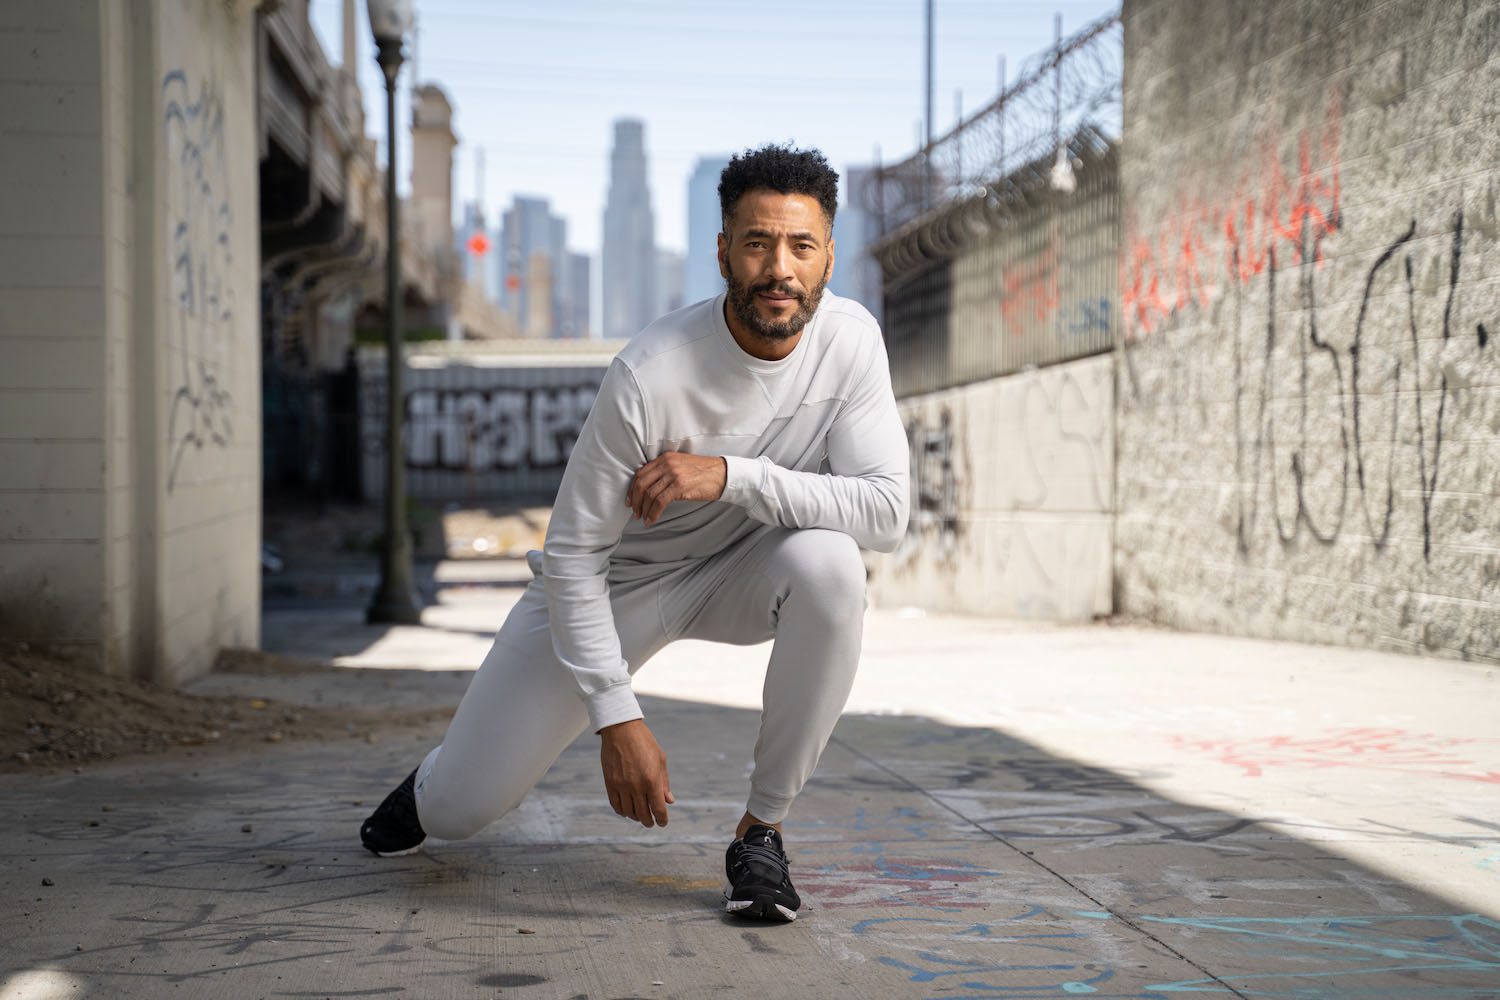 Lifestyle-On-Location-Model-Onmodel-Damion-Lloyd-Photography-Commercial-Product-Apparel-Clothing-Los-Angeles-Orange-County-male-man-GLYDER-sportswear-outdoor-city-kneel-alley-active-downtown